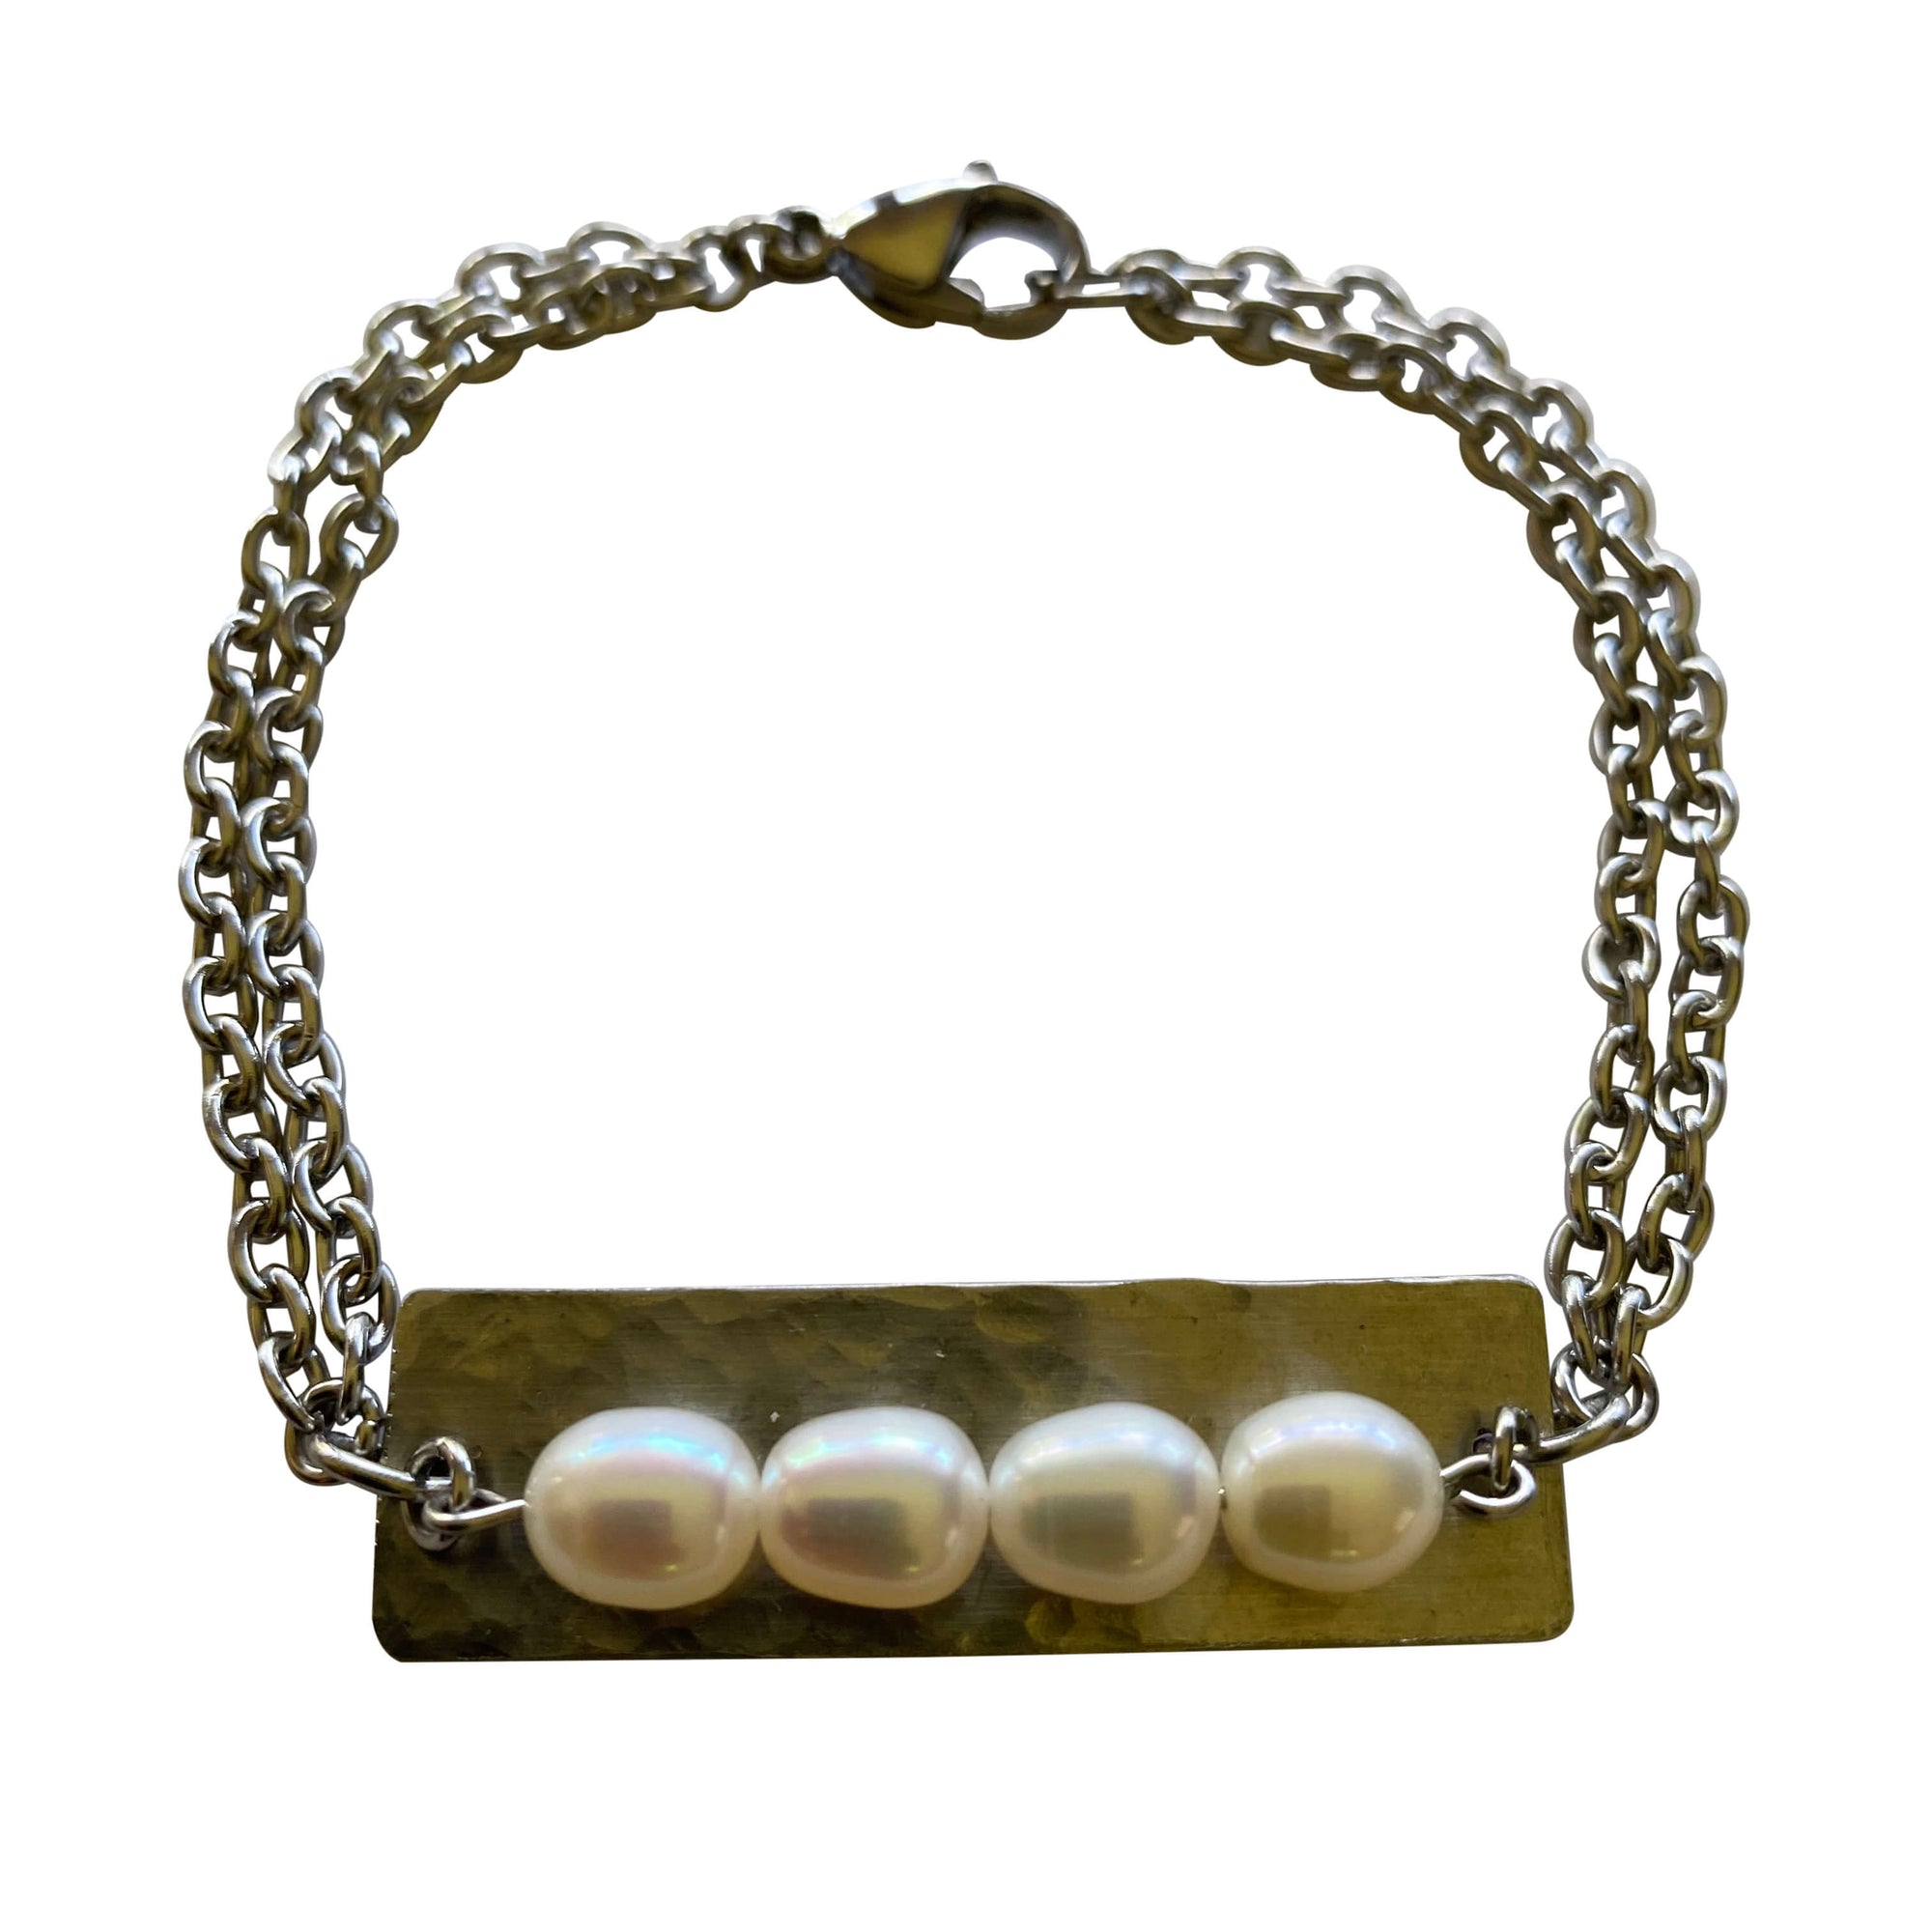 Freshwater Pearl Stainless Steel Silver Bracelet with Toggle Clasp-Bracelets- Creative Jewelry by Marcia